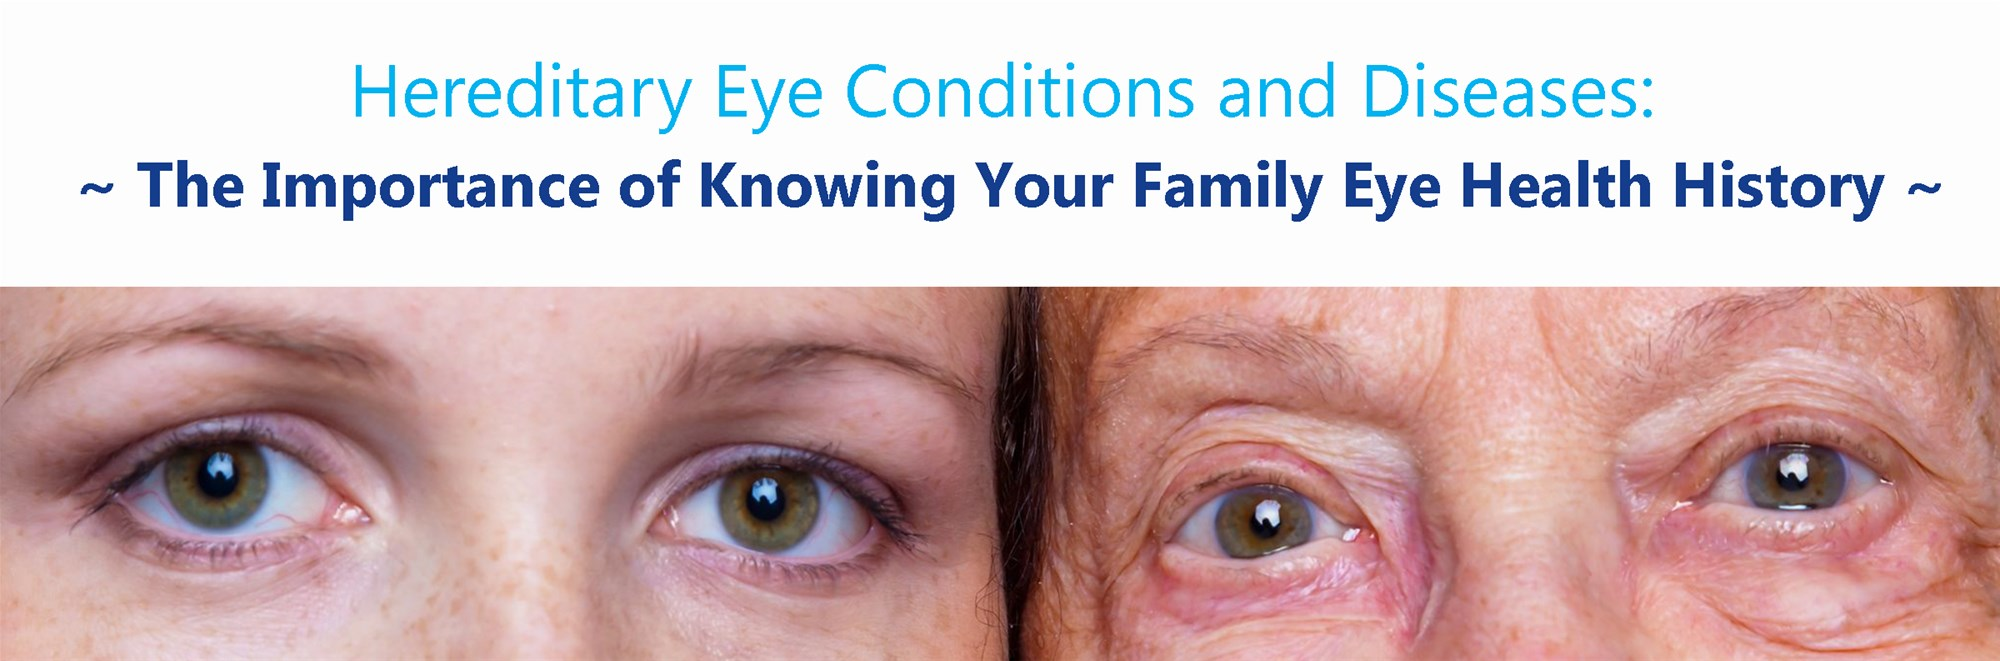 Hereditary Eye Conditions And Diseases